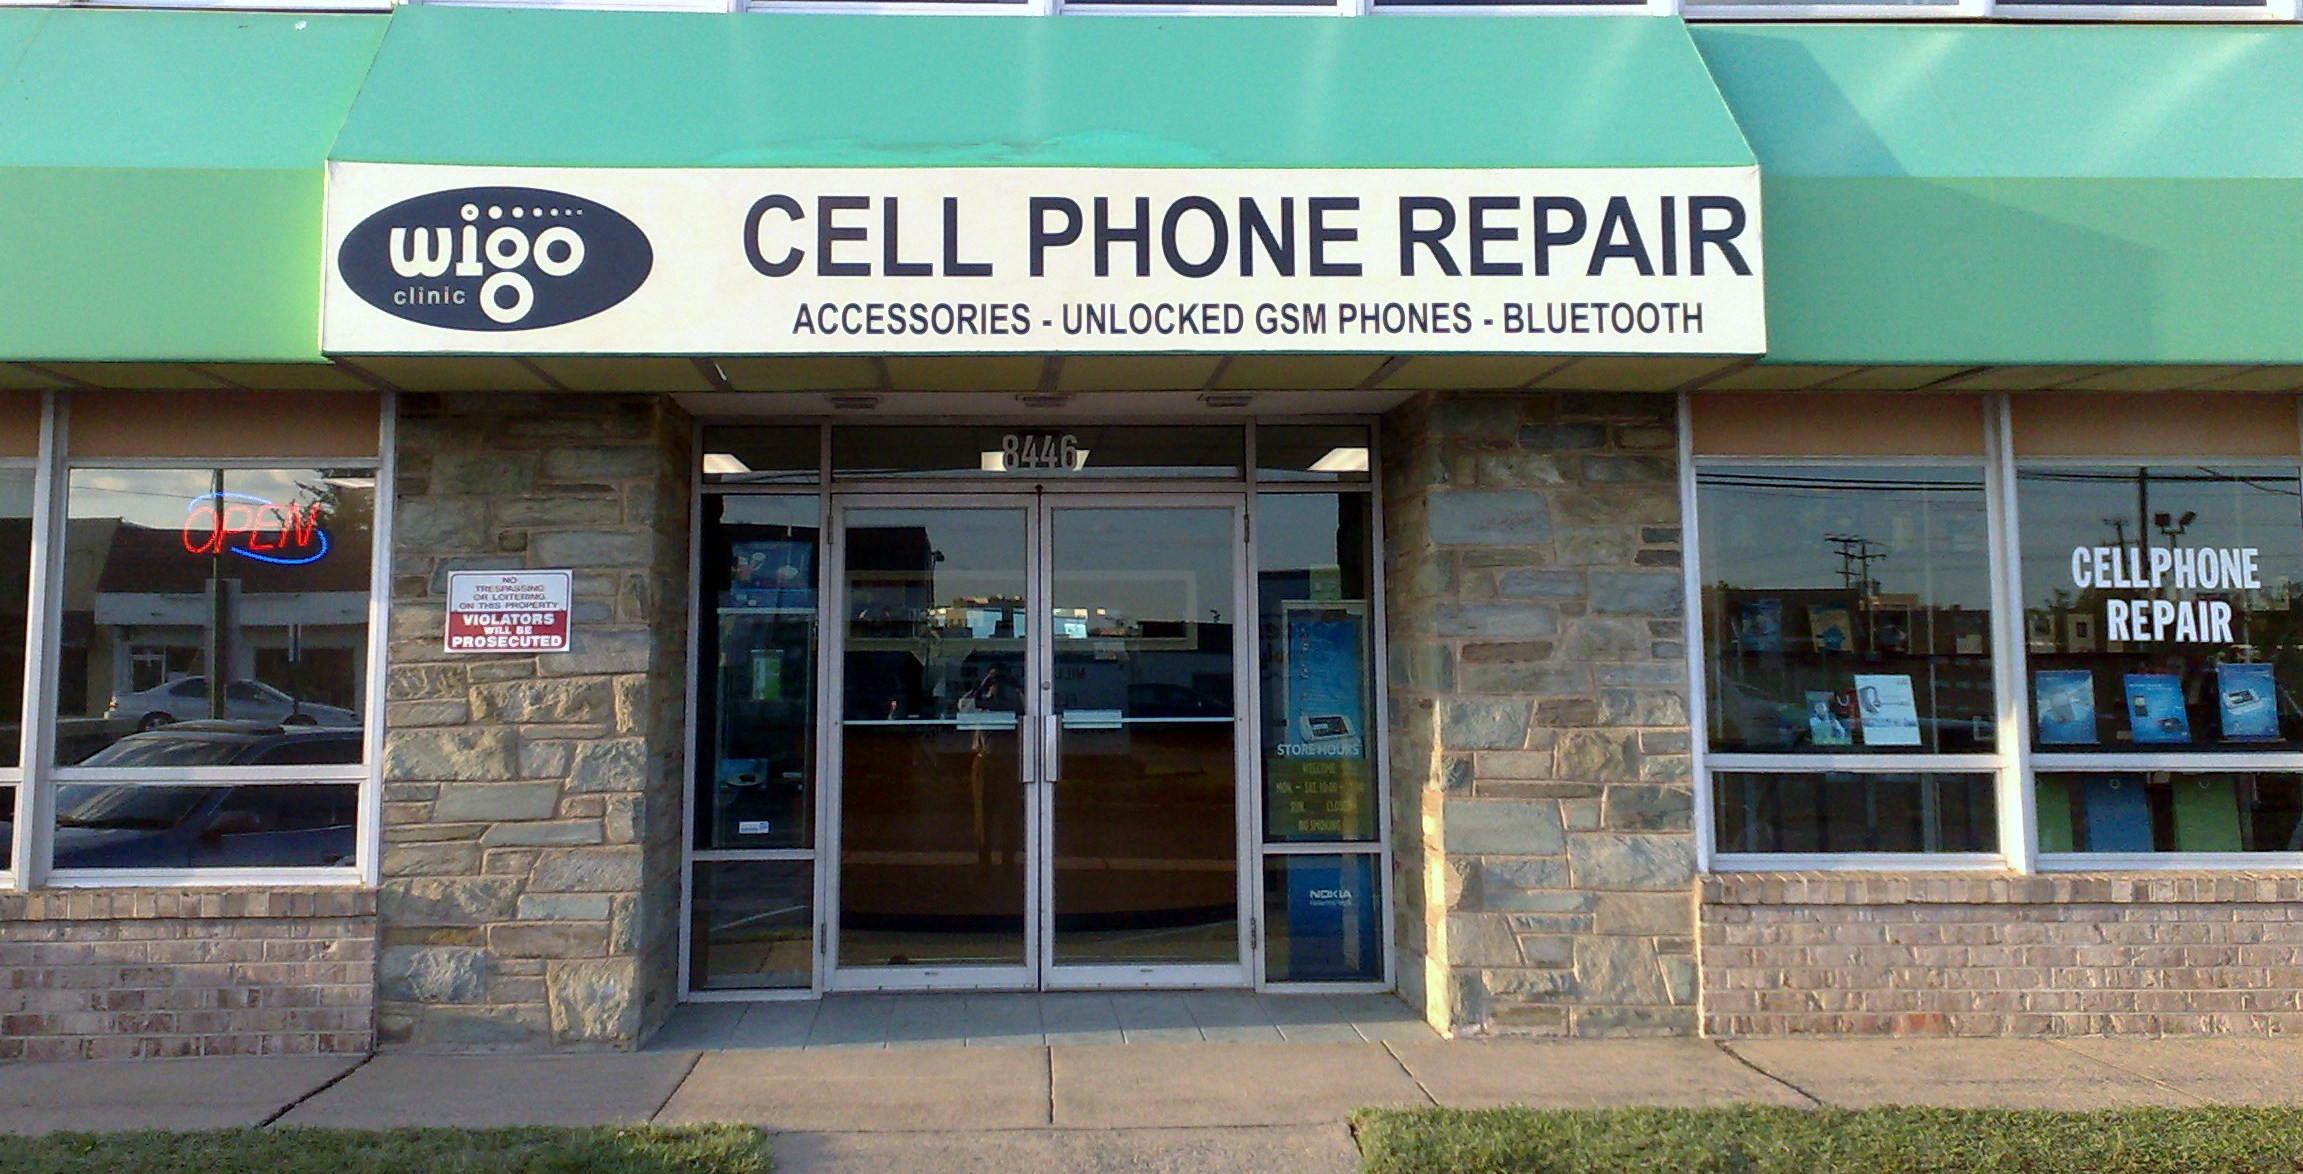 Cell Phone Repair Abbotsford together with Locksmithsireland wordpress furthermore naples puters further atlantapawnshops likewise FC 9M0107 Body Gap Gauge Tool. on electronic repair shops